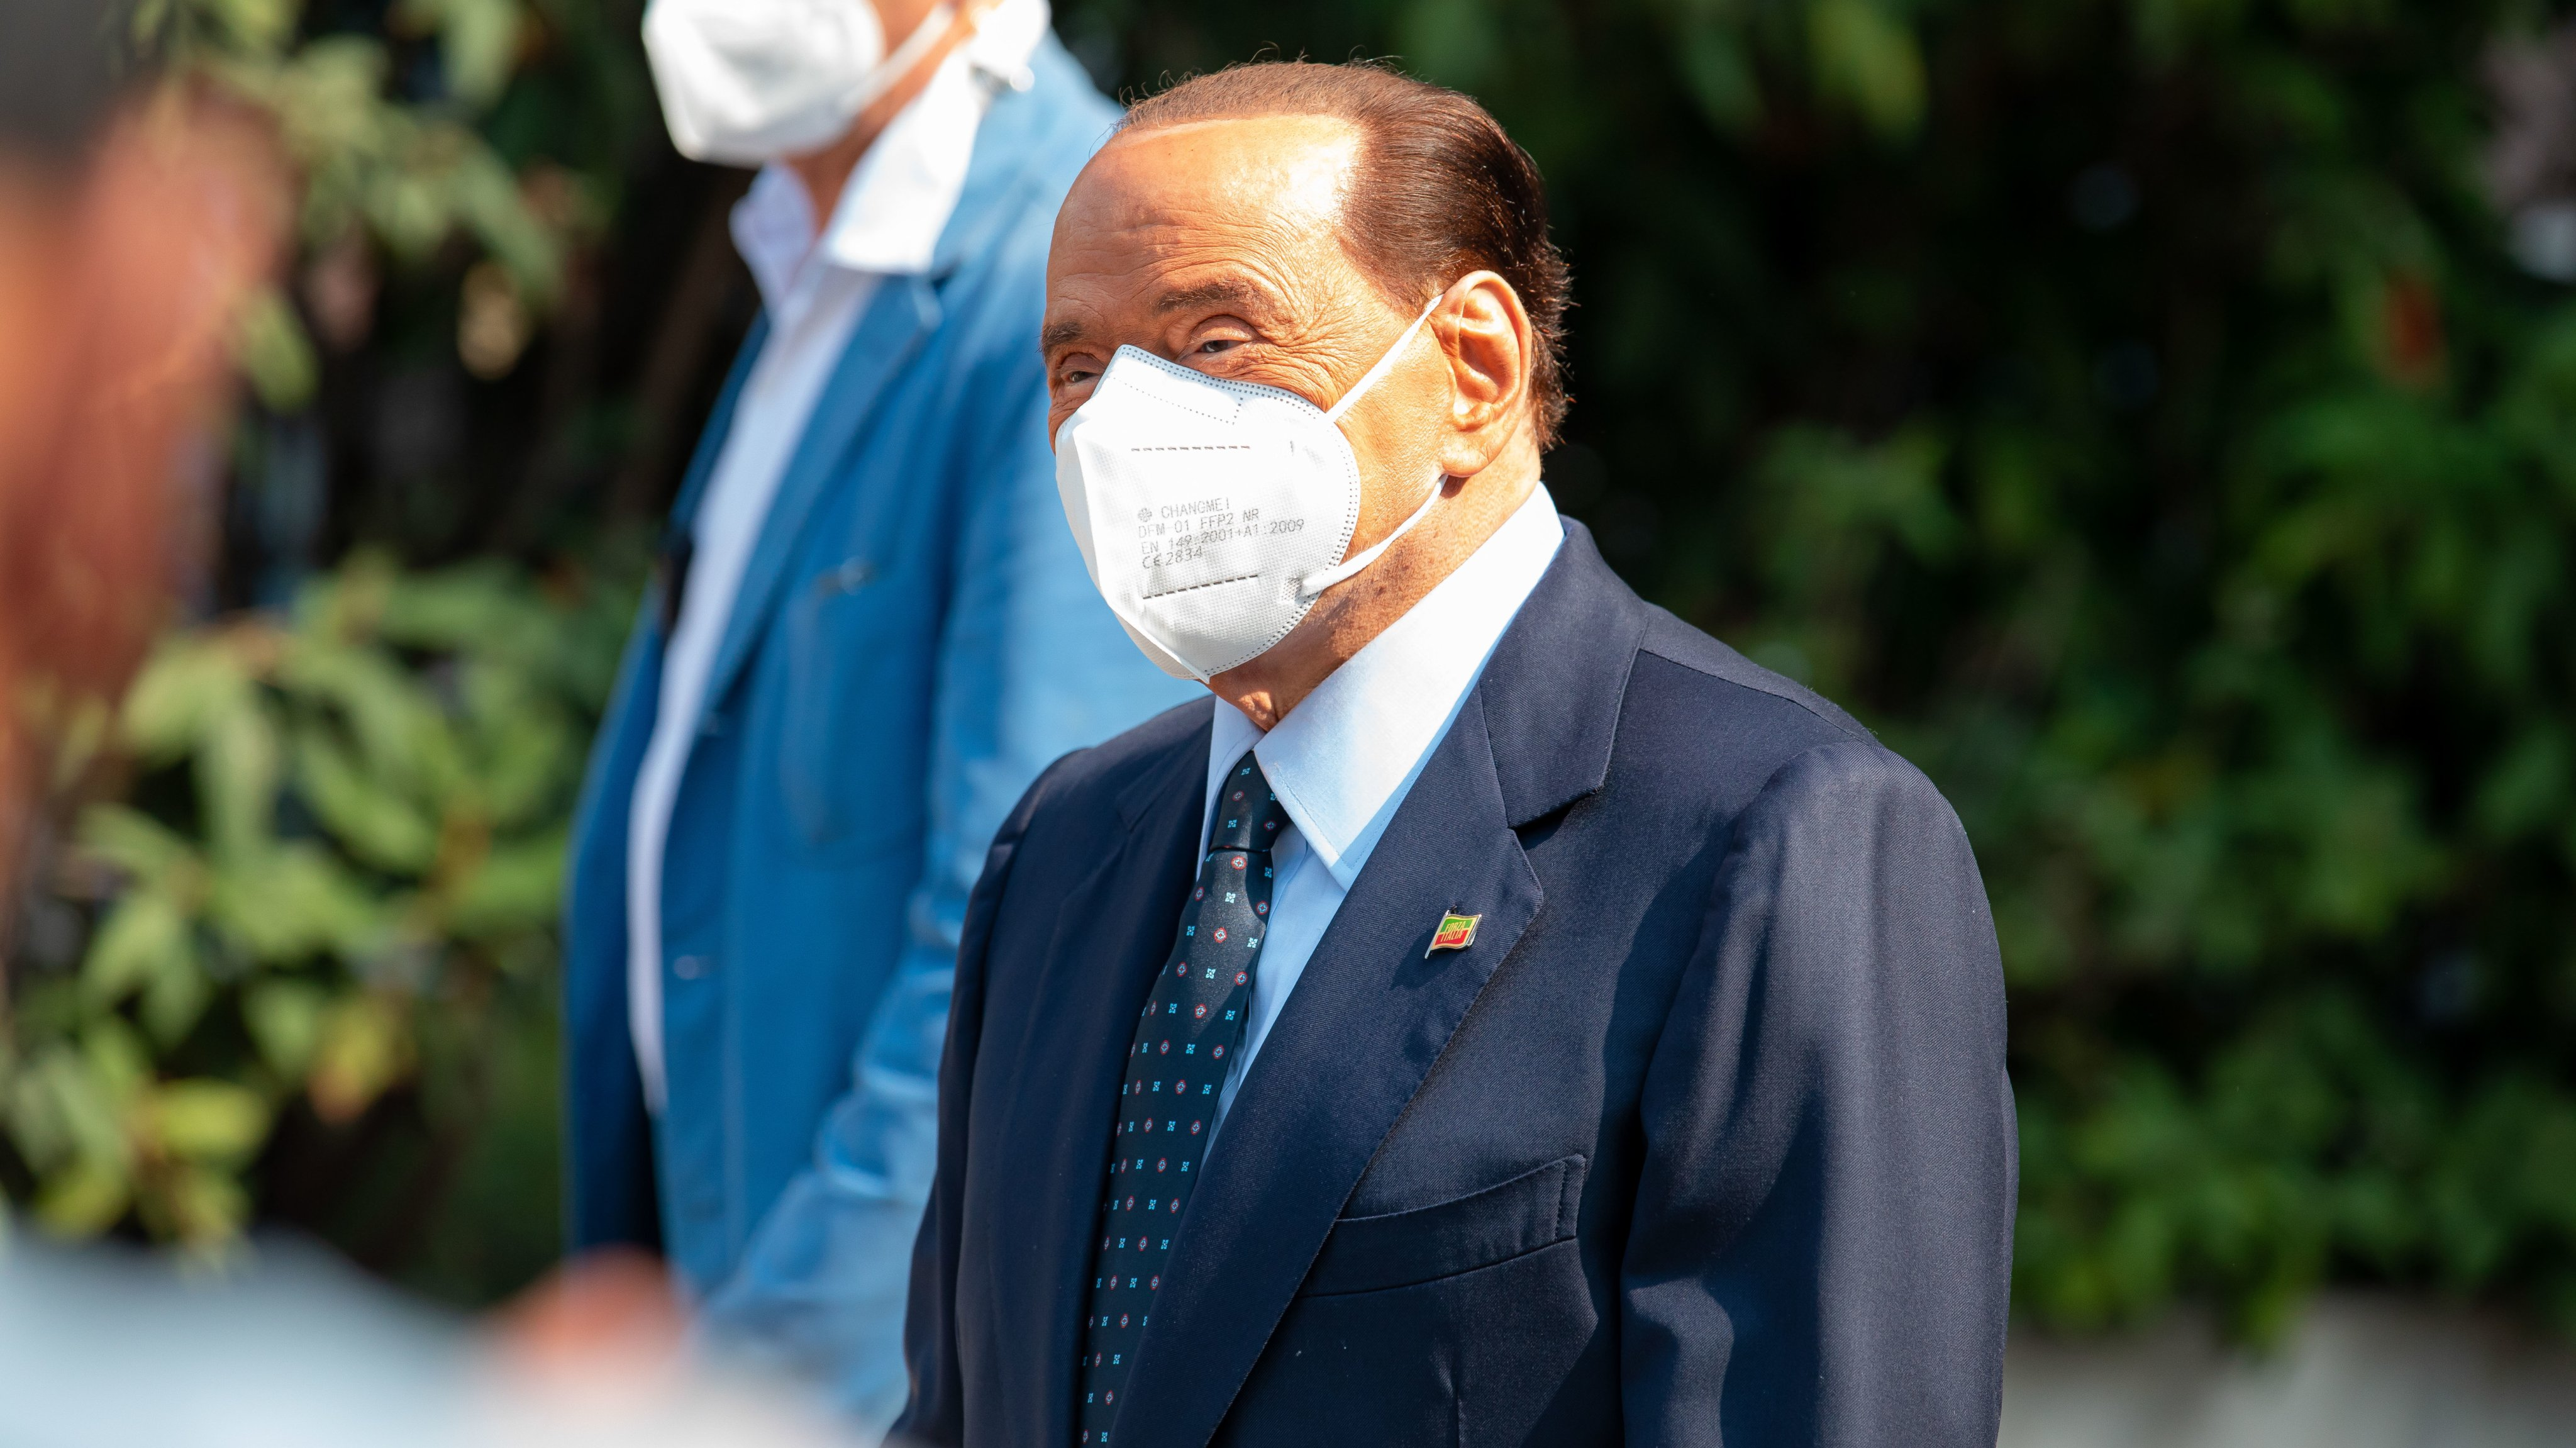 Silvio Berlusconi Press Conference After Hospital Discharge